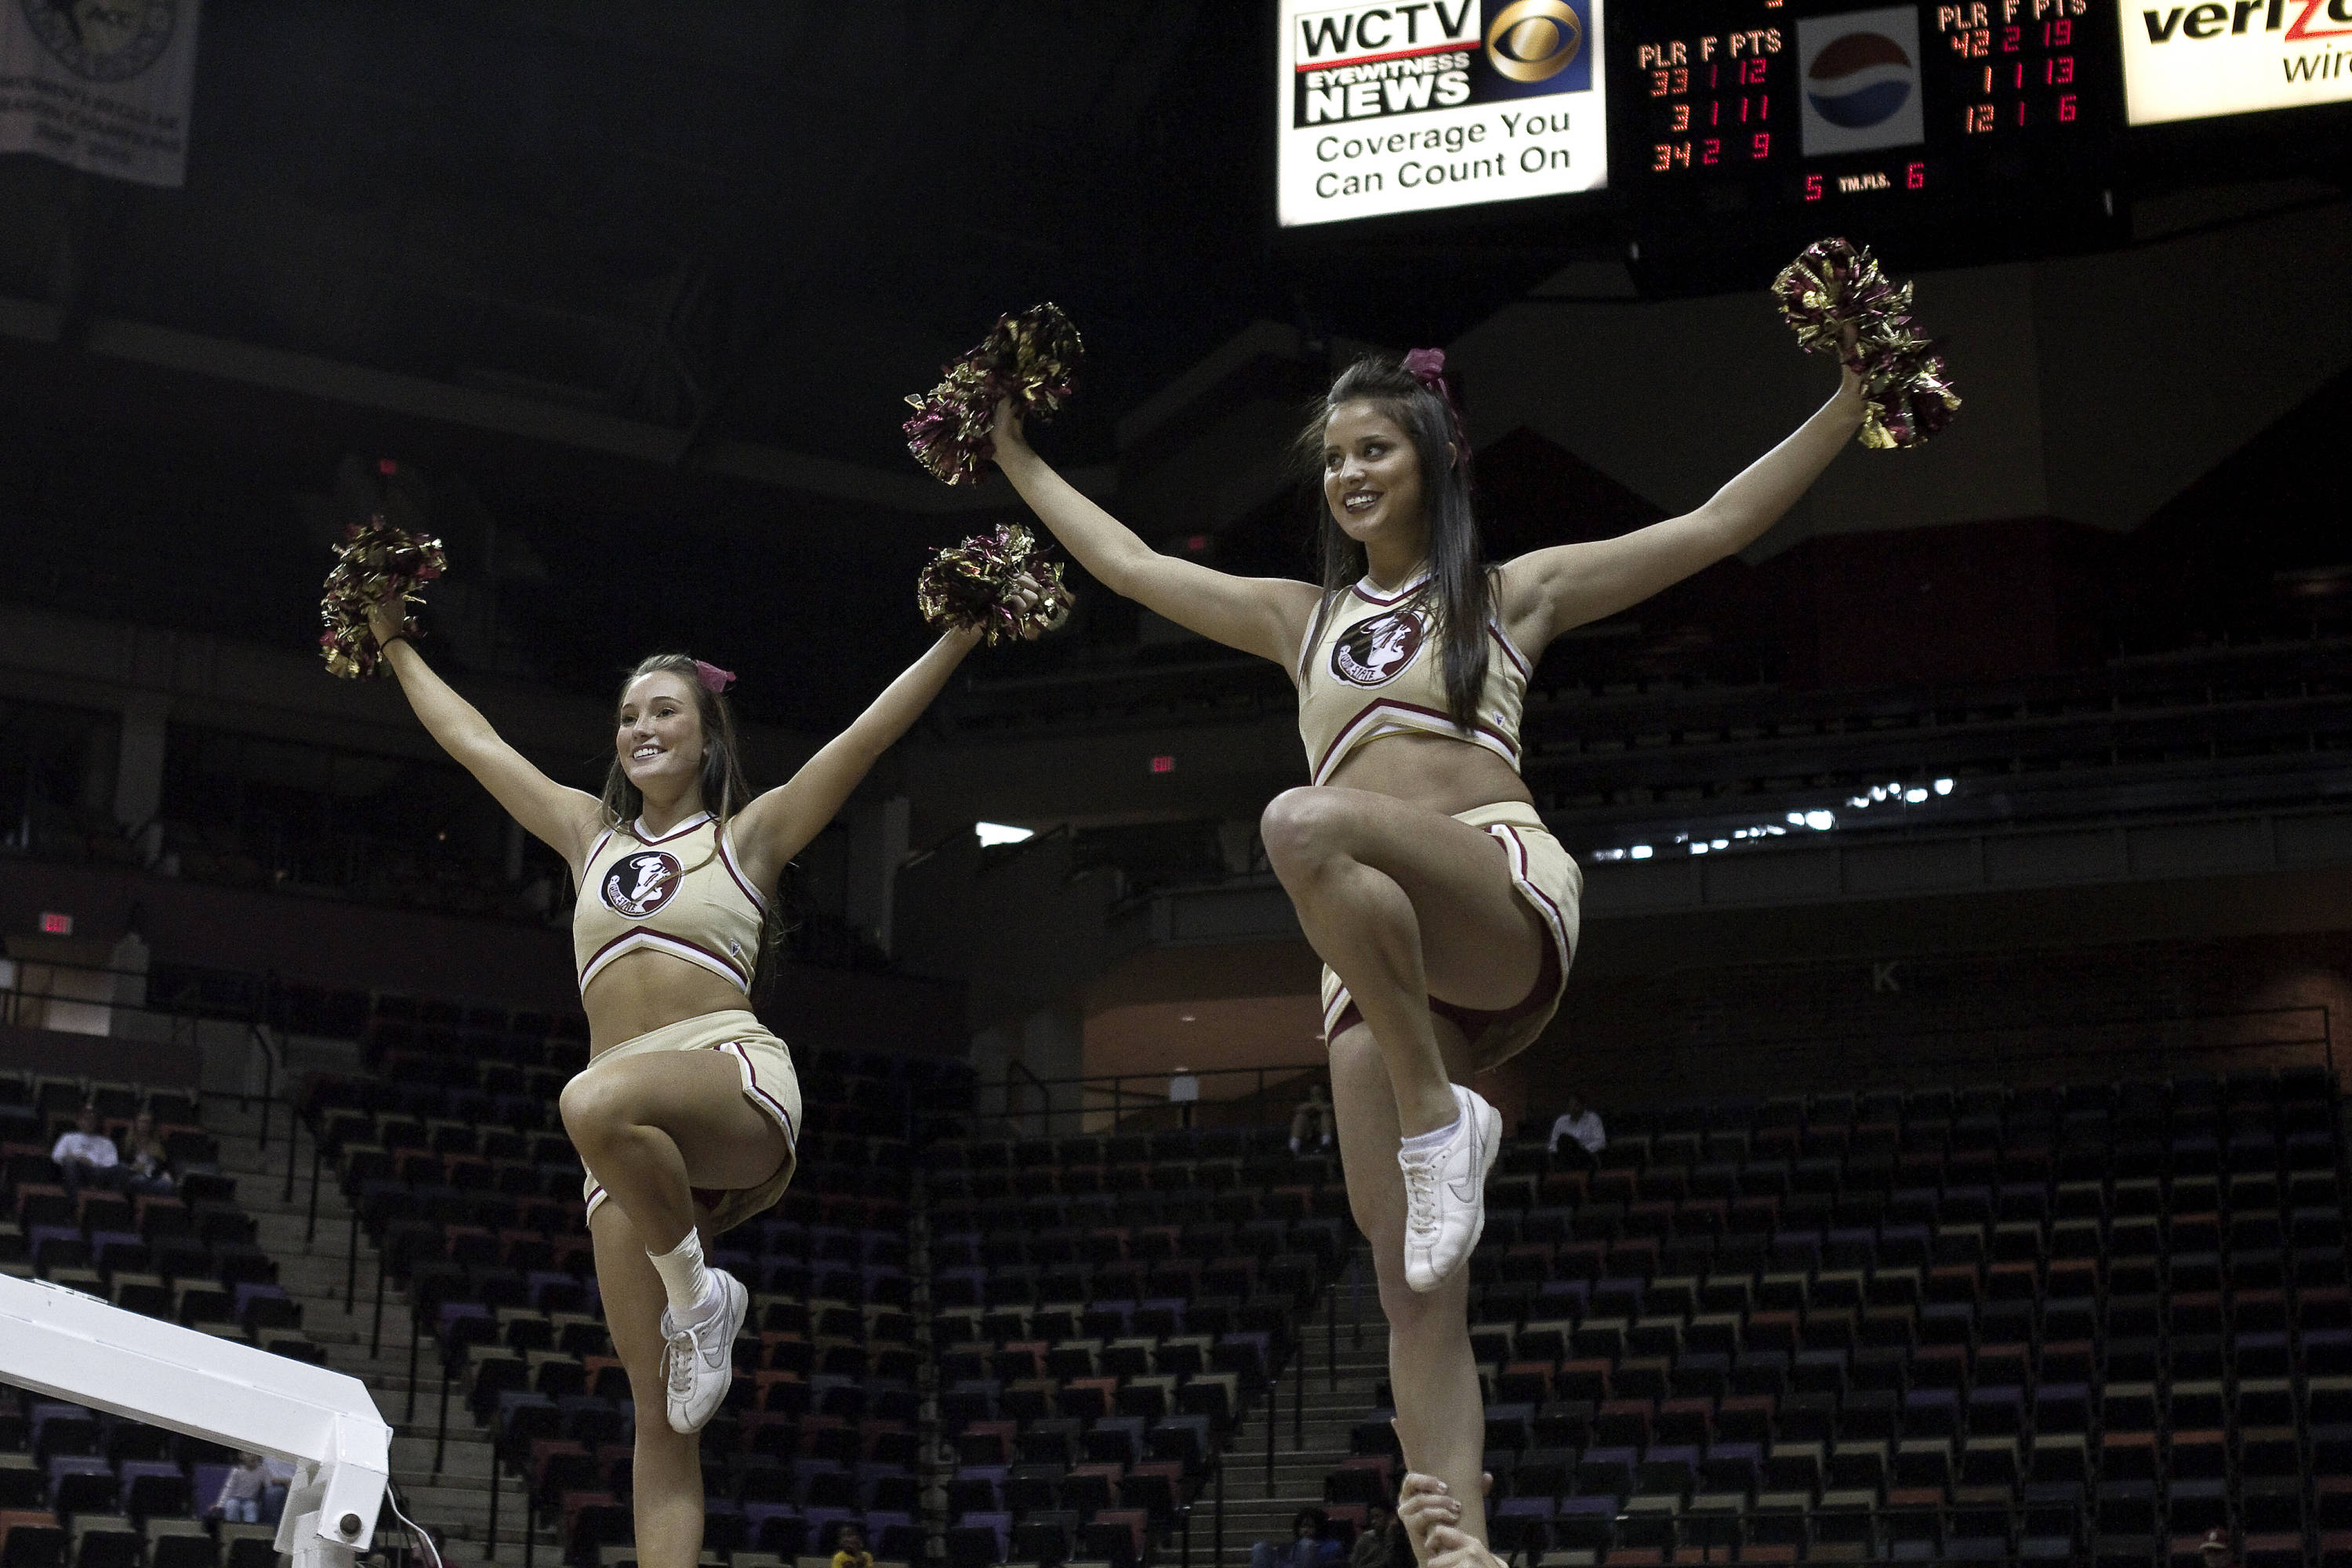 FSU vs Miami - 01/24/11 - FSU Cheerleaders